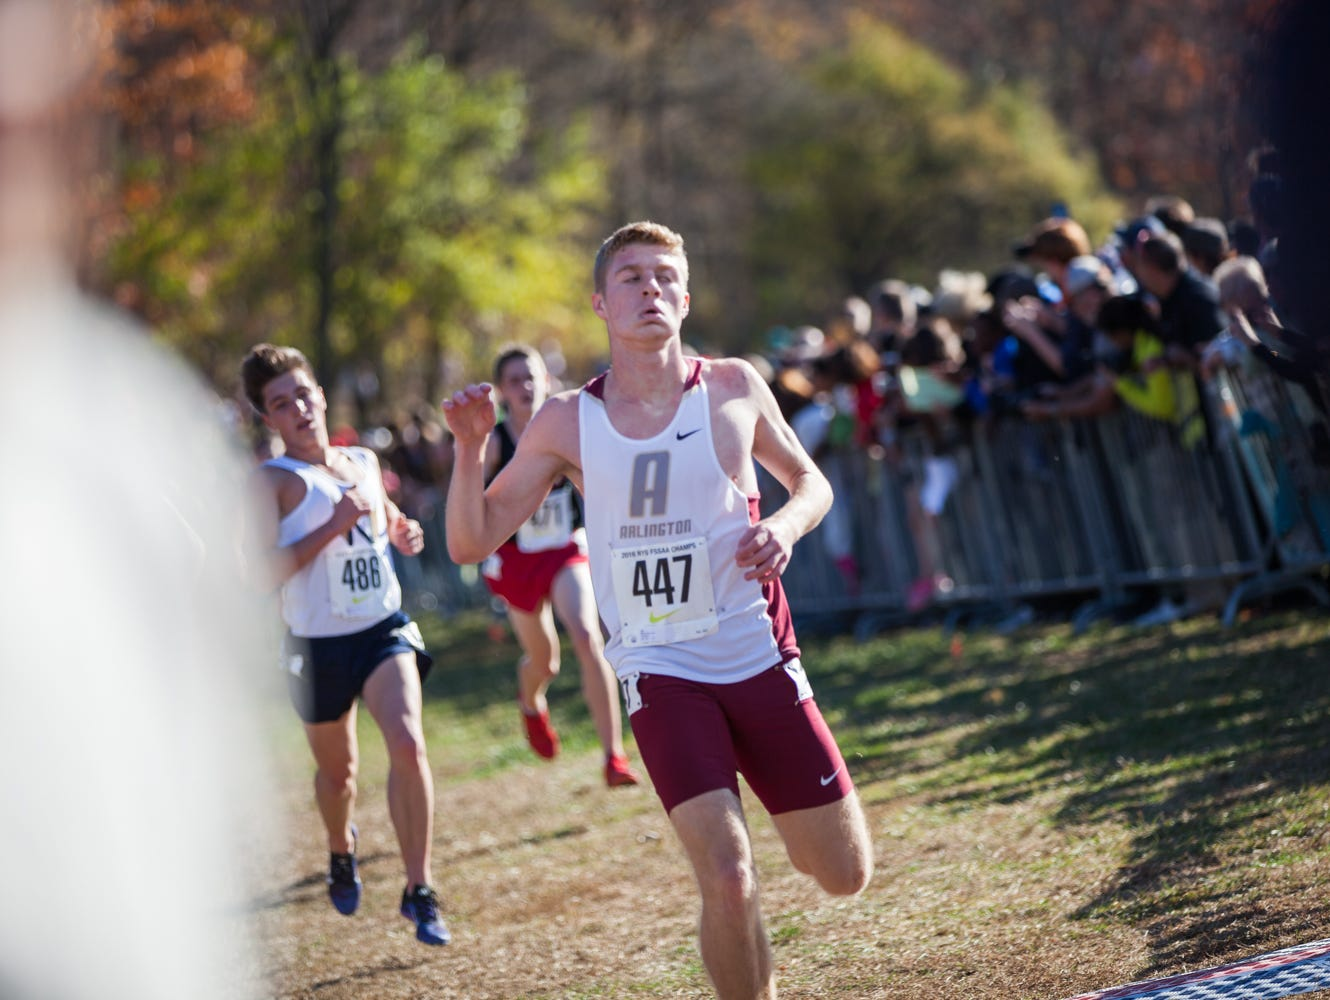 Arlington's Joe Morrison to competes in the Federation Cross Country Championships at Bowdoin Park in Wappingers on Saturday, November 19th, 2016.